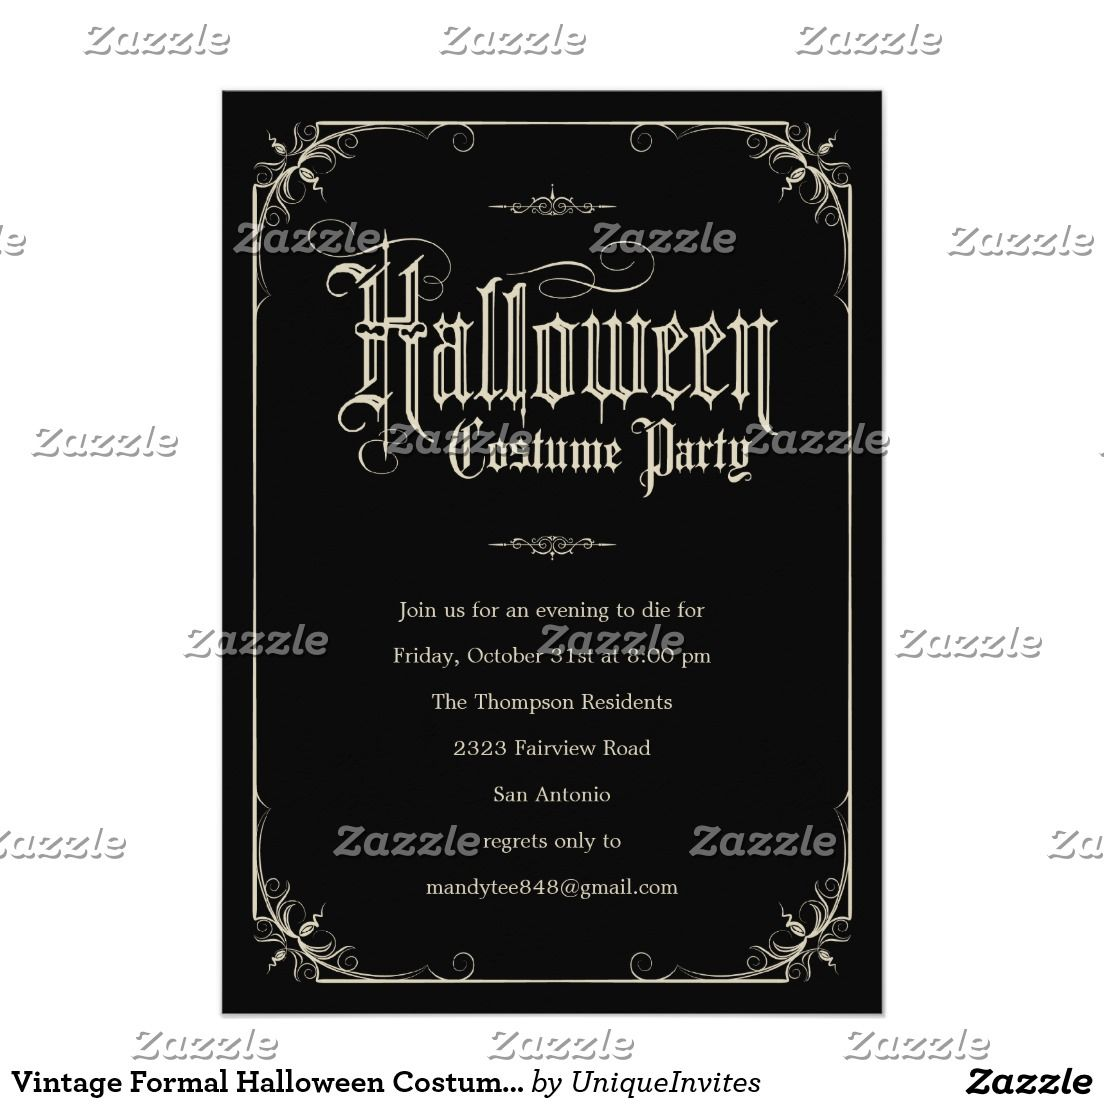 Vintage Formal Halloween Costume Party Invitations | Halloween ...